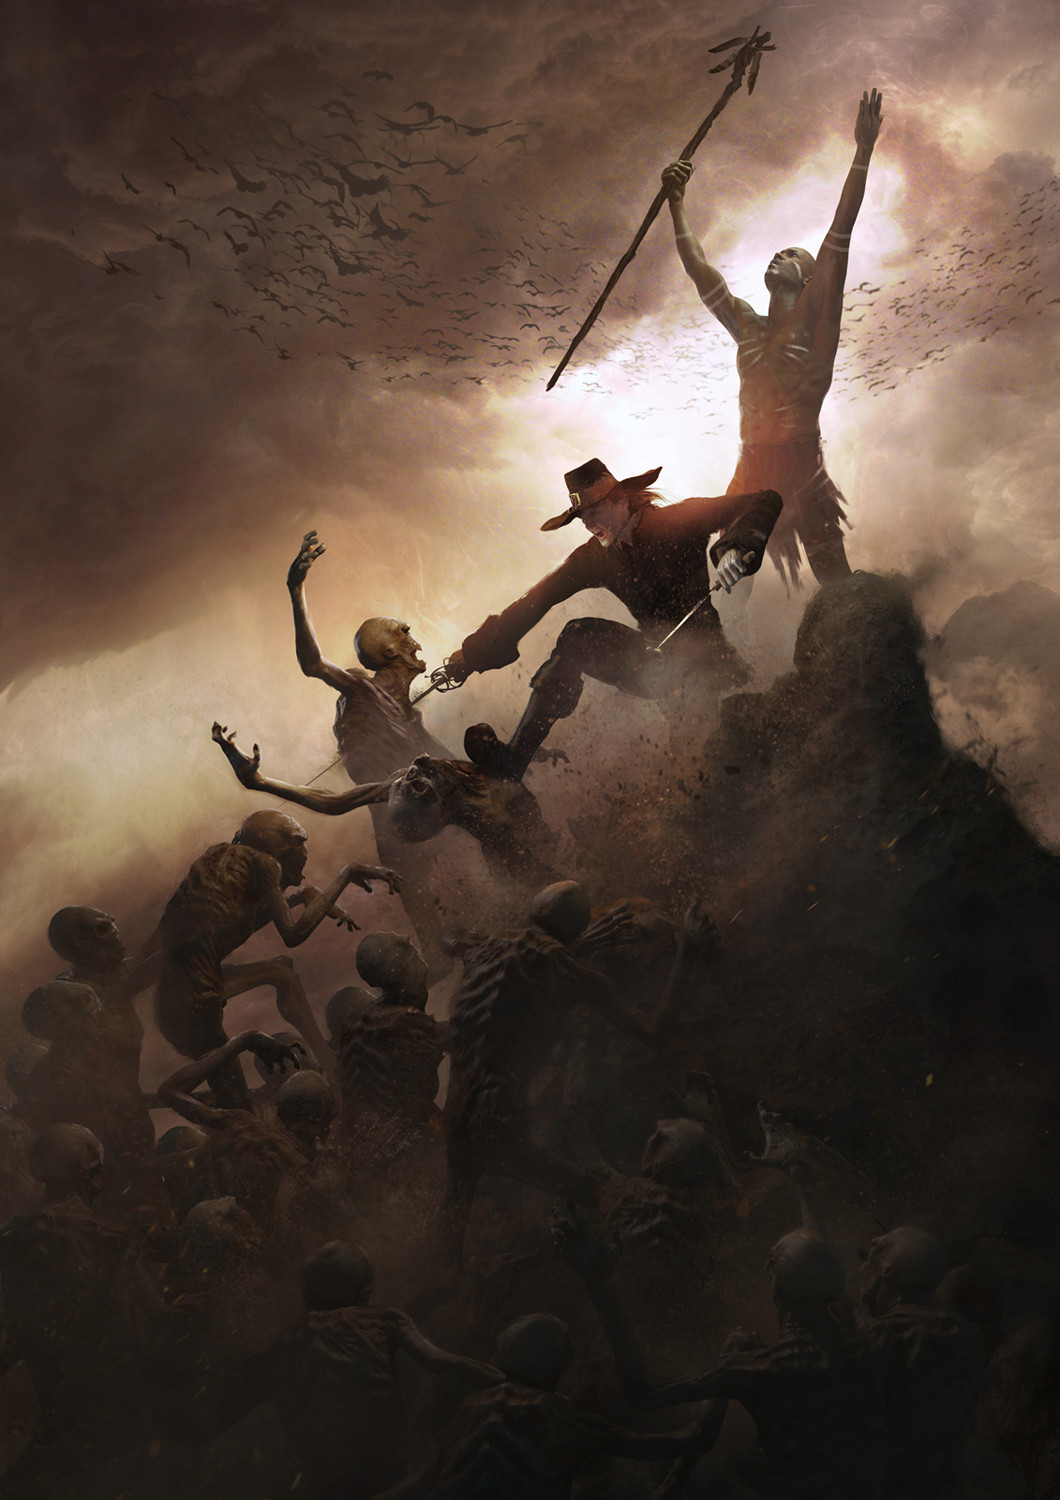 Guillem h pongiluppi solomon kane story 10 the hills of the dex zombie attack